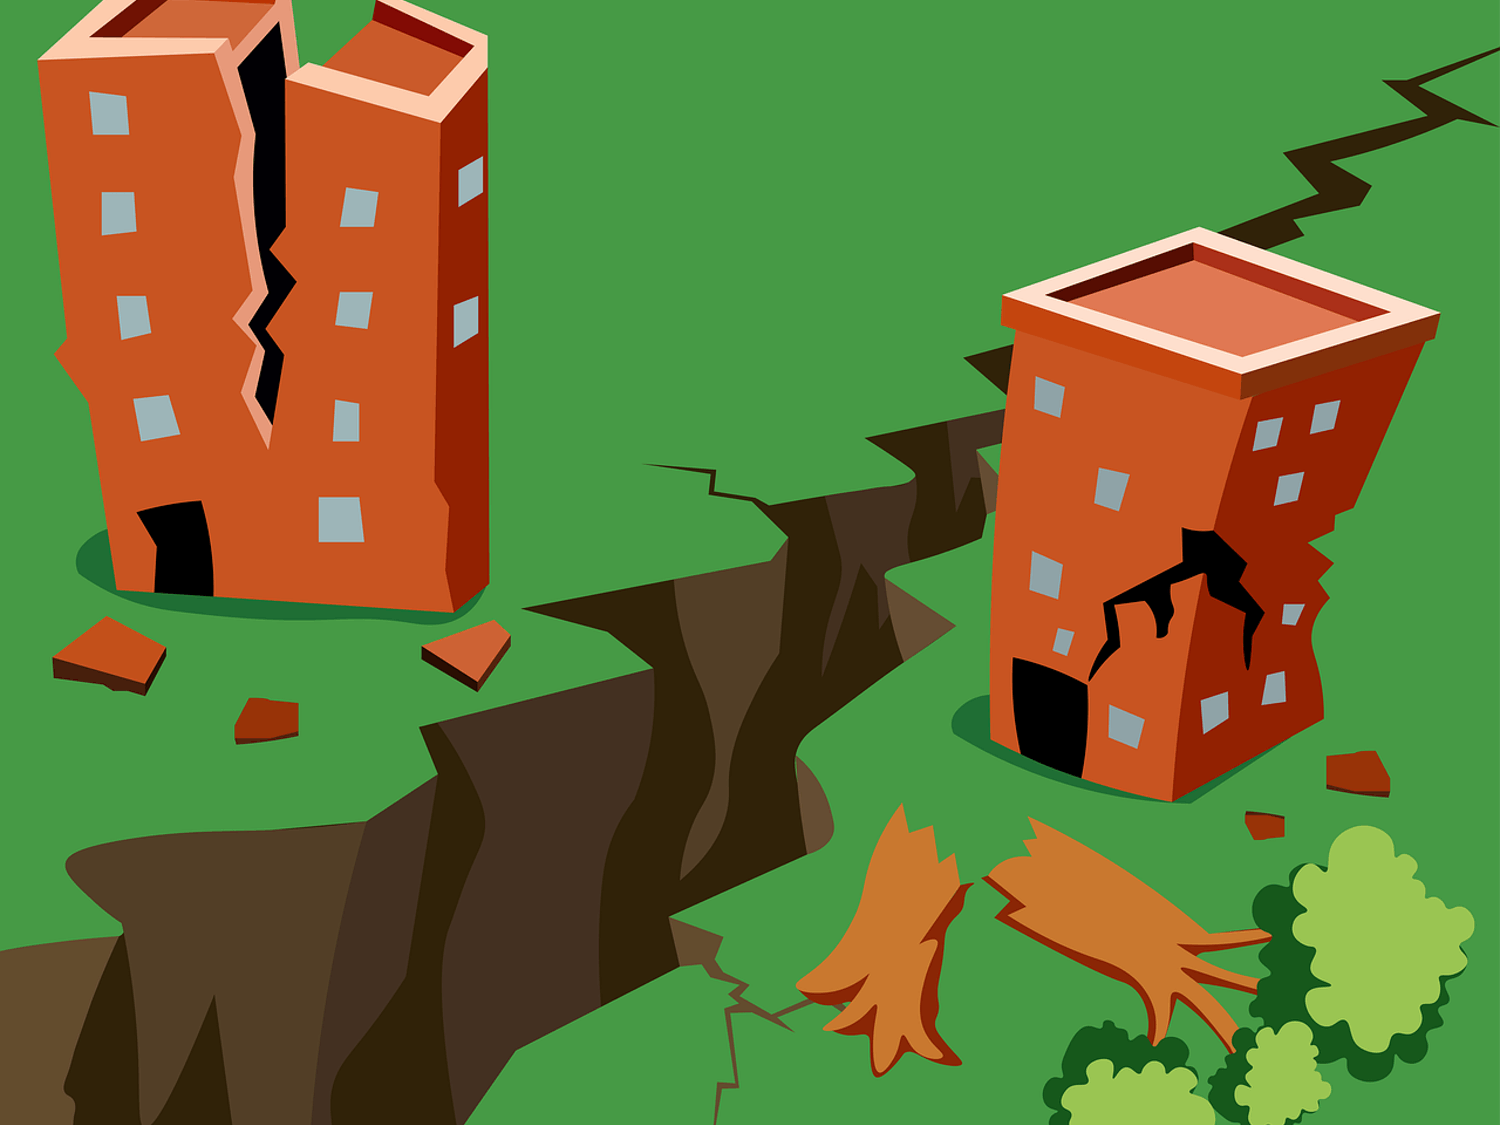 With several significant fault lines in the region, Western Washington University is at risk from major earthquakes. Western administration, local experts and a student from Alaska have provided their insights on how to prepare for these major natural disasters. // Illustration via Pixabay